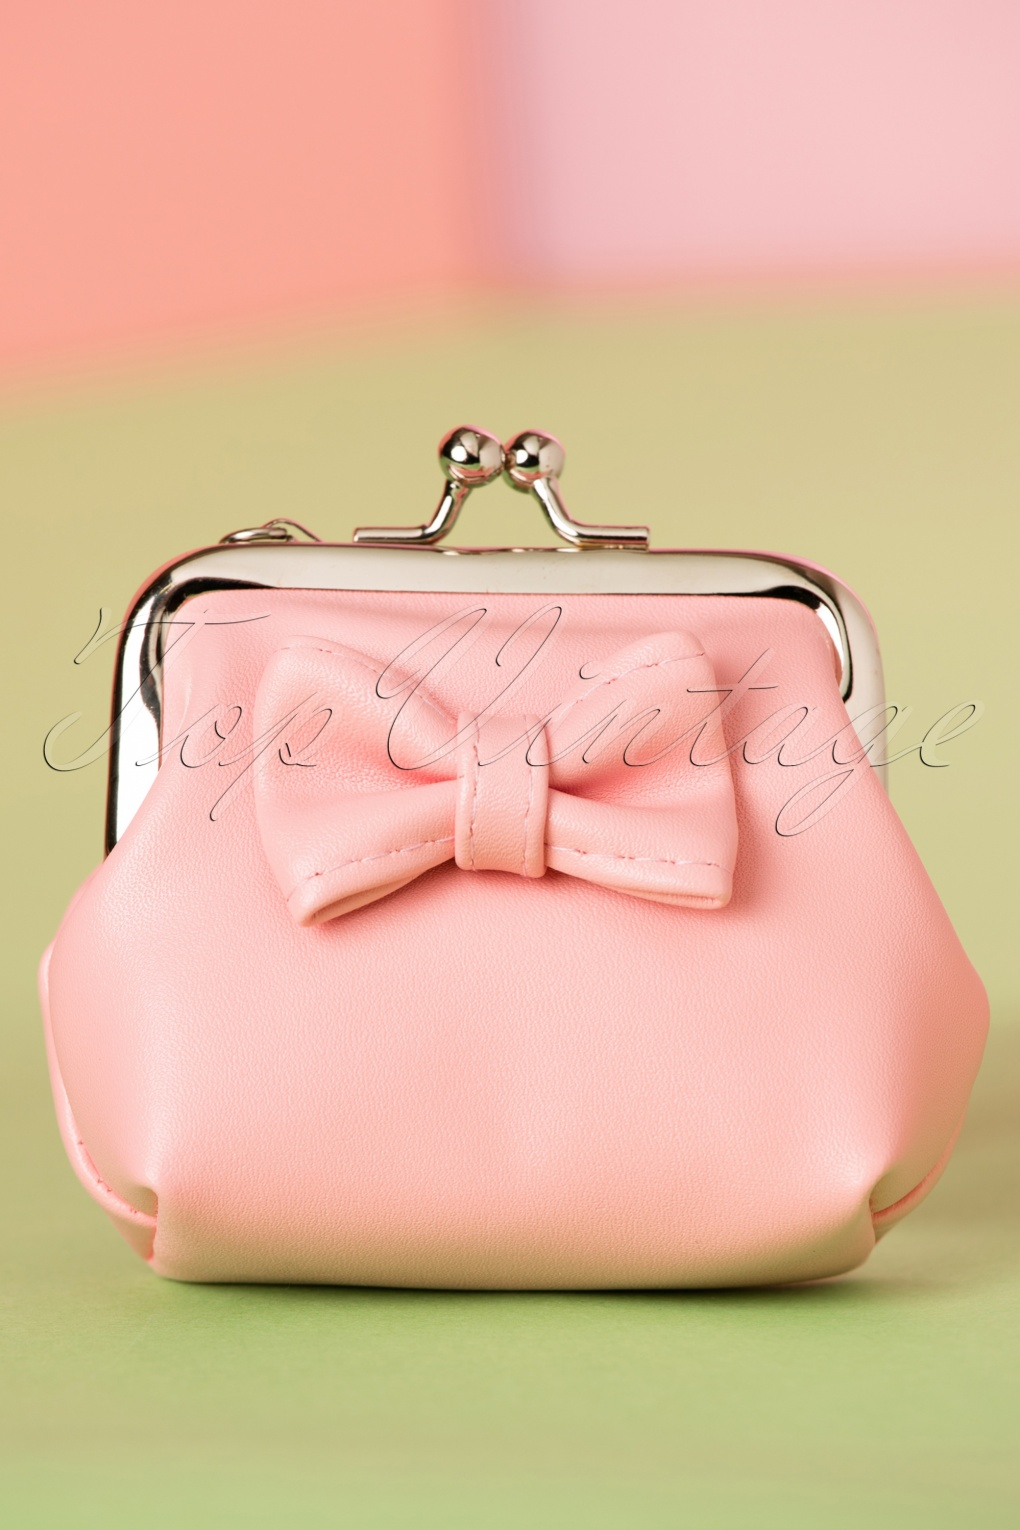 Vintage & Retro Handbags, Purses, Wallets, Bags 50s Sienna Bow Small Wallet in Pink £7.06 AT vintagedancer.com